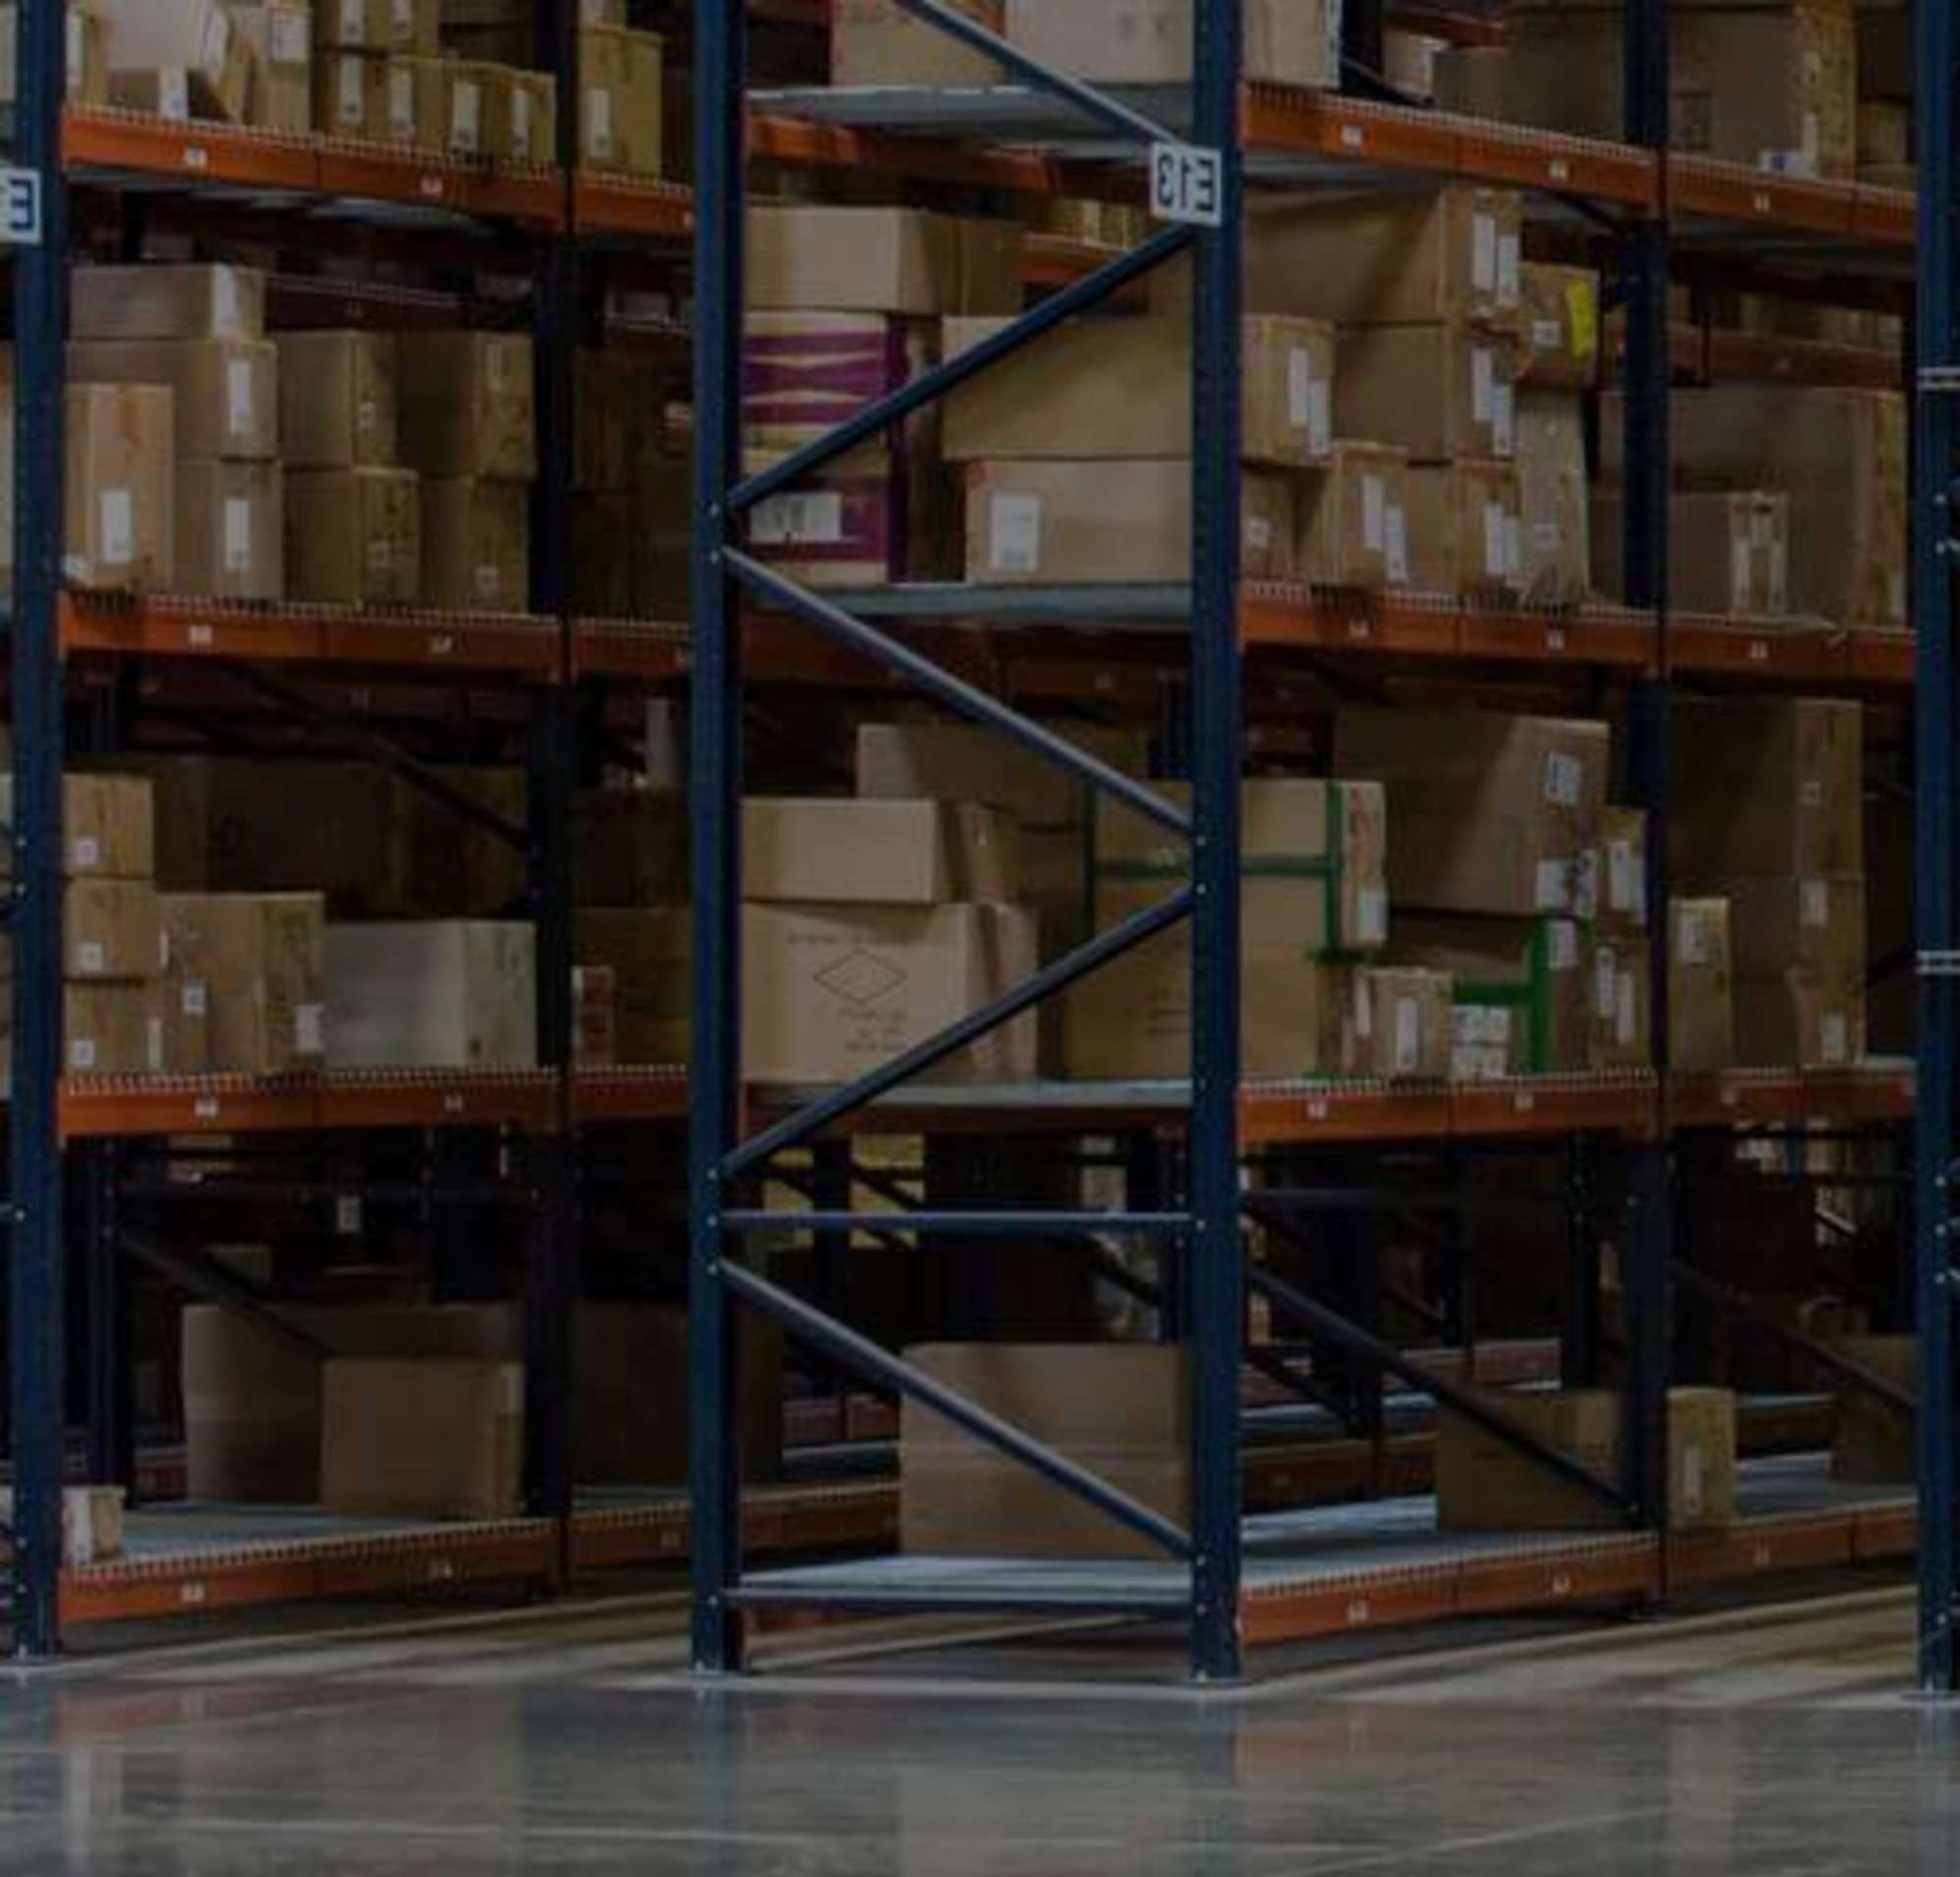 Two people in a warehouse full of boxes looking at an ipad while pushing a dolly.